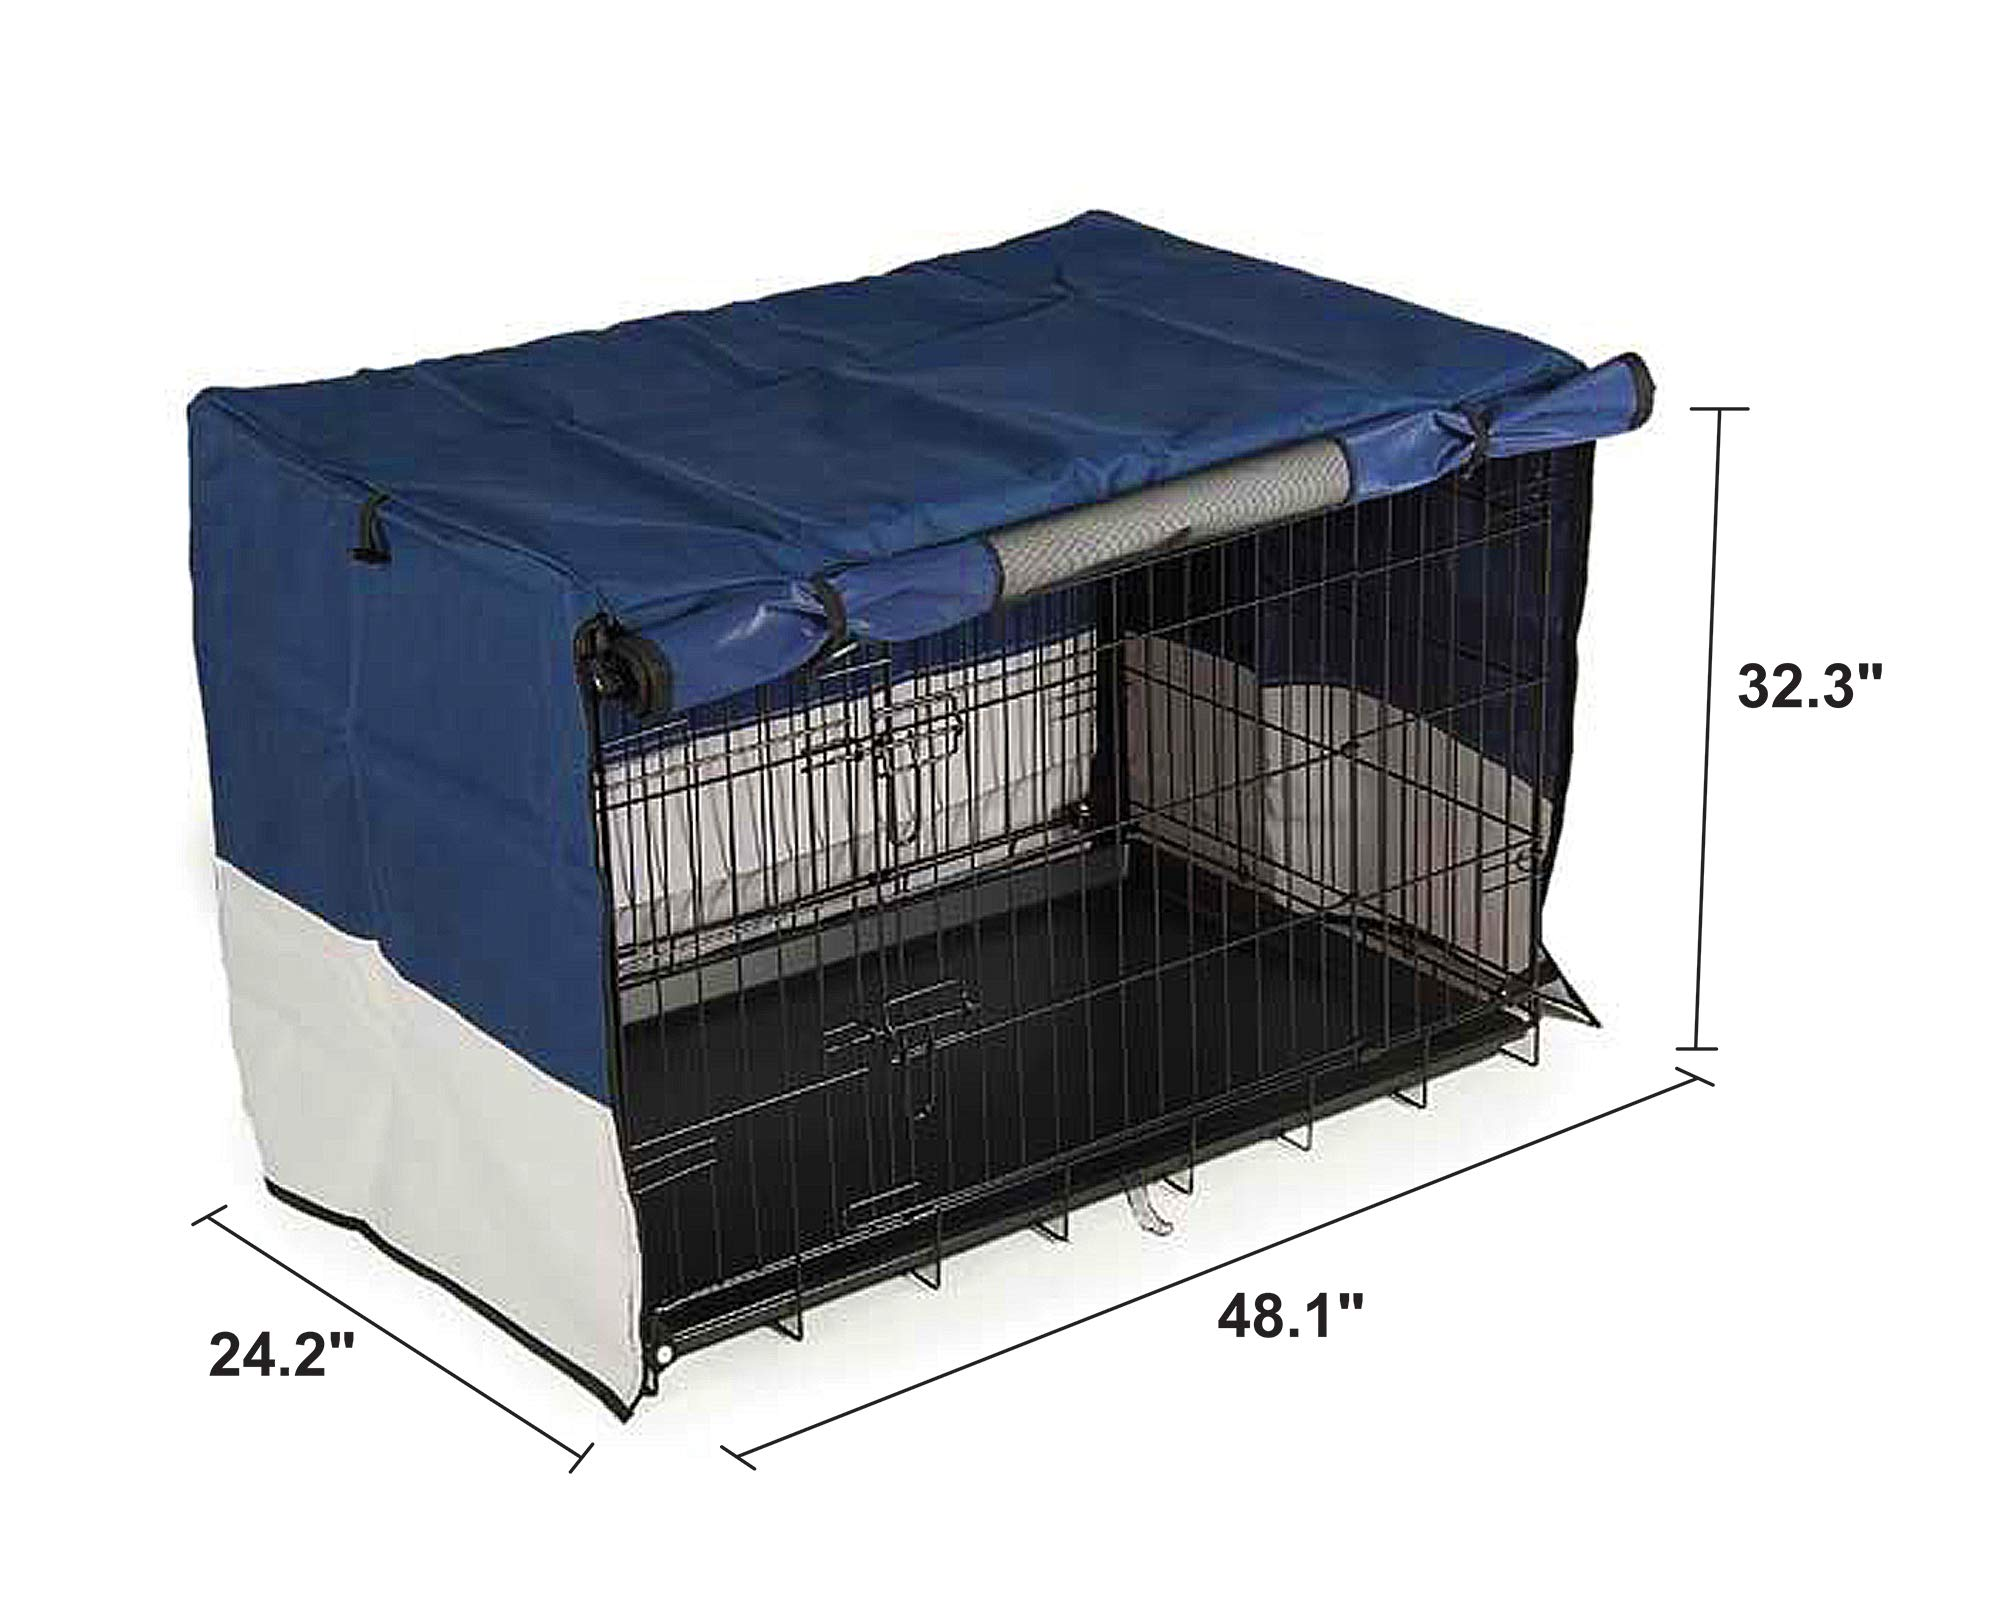 Iconic Pet Protectant & Durable Indoor/Outdoor Pet Crate Cover for 48'' Pet Cage - Oxford Fabric Cover, Water Resistant, Four Side Zippers for Better Visibility of Dogs/Cats, Navy Blue/Light Gray